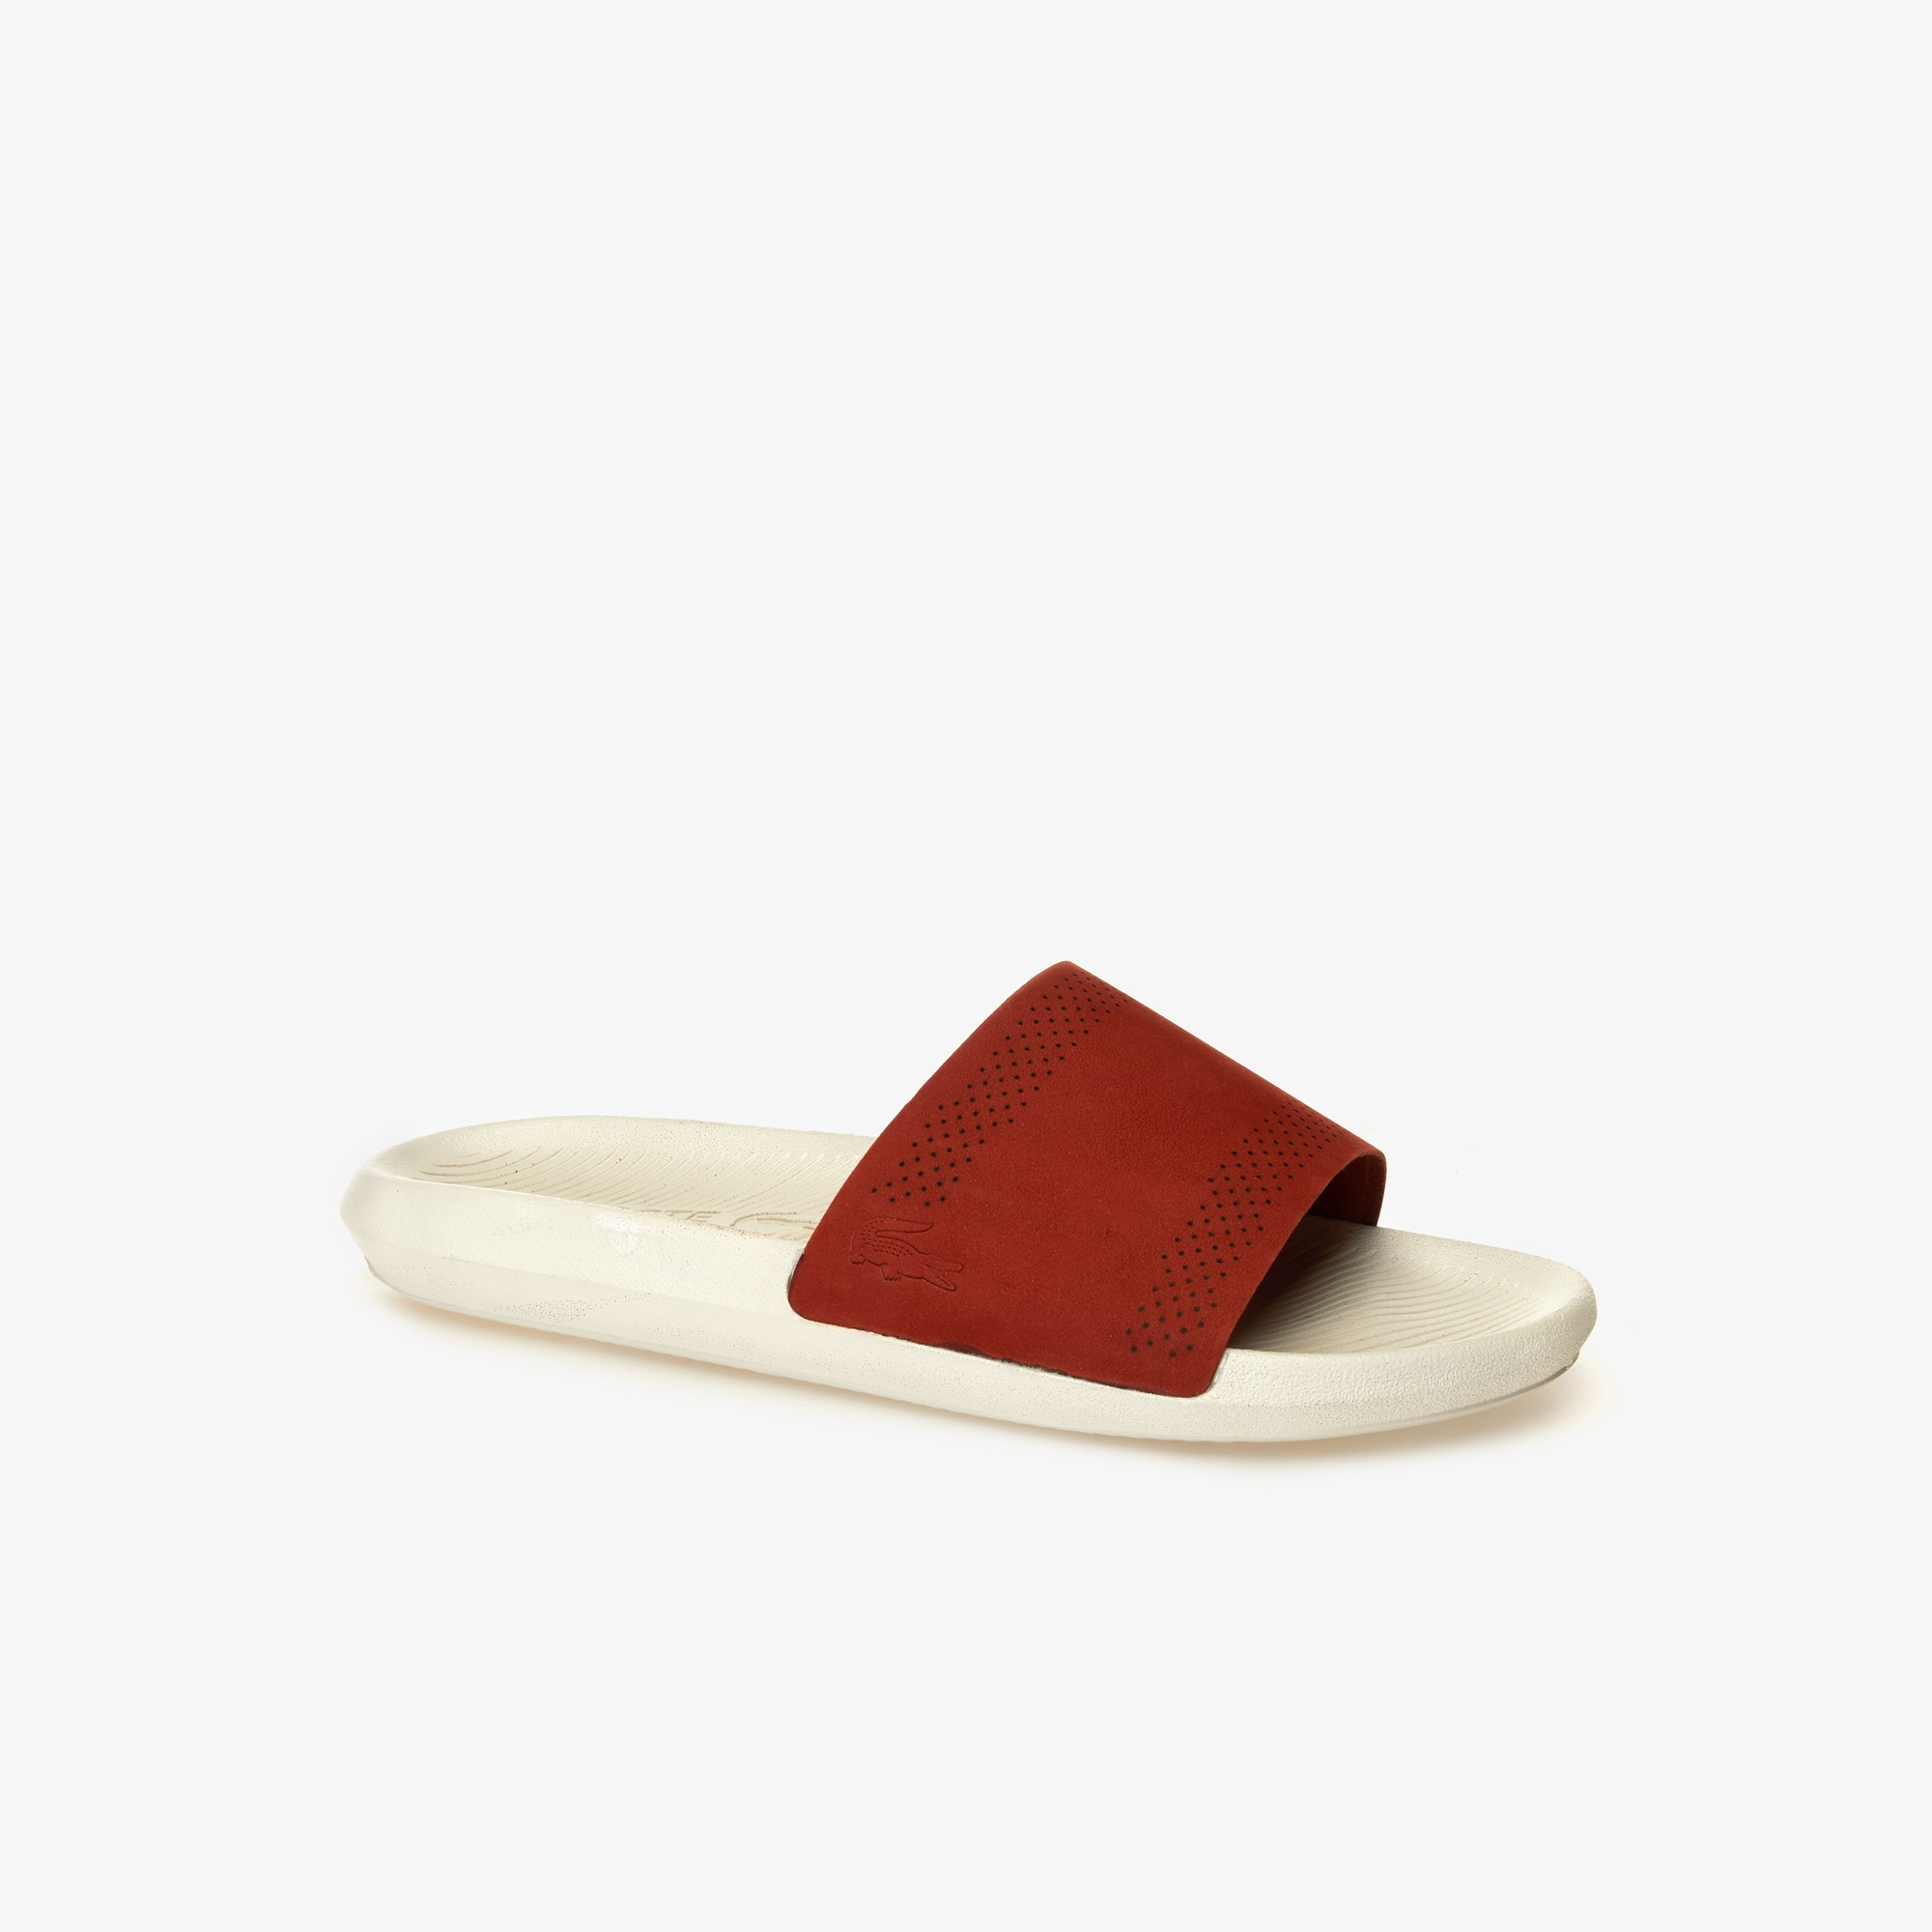 Men's Croco Slide Leather Slides